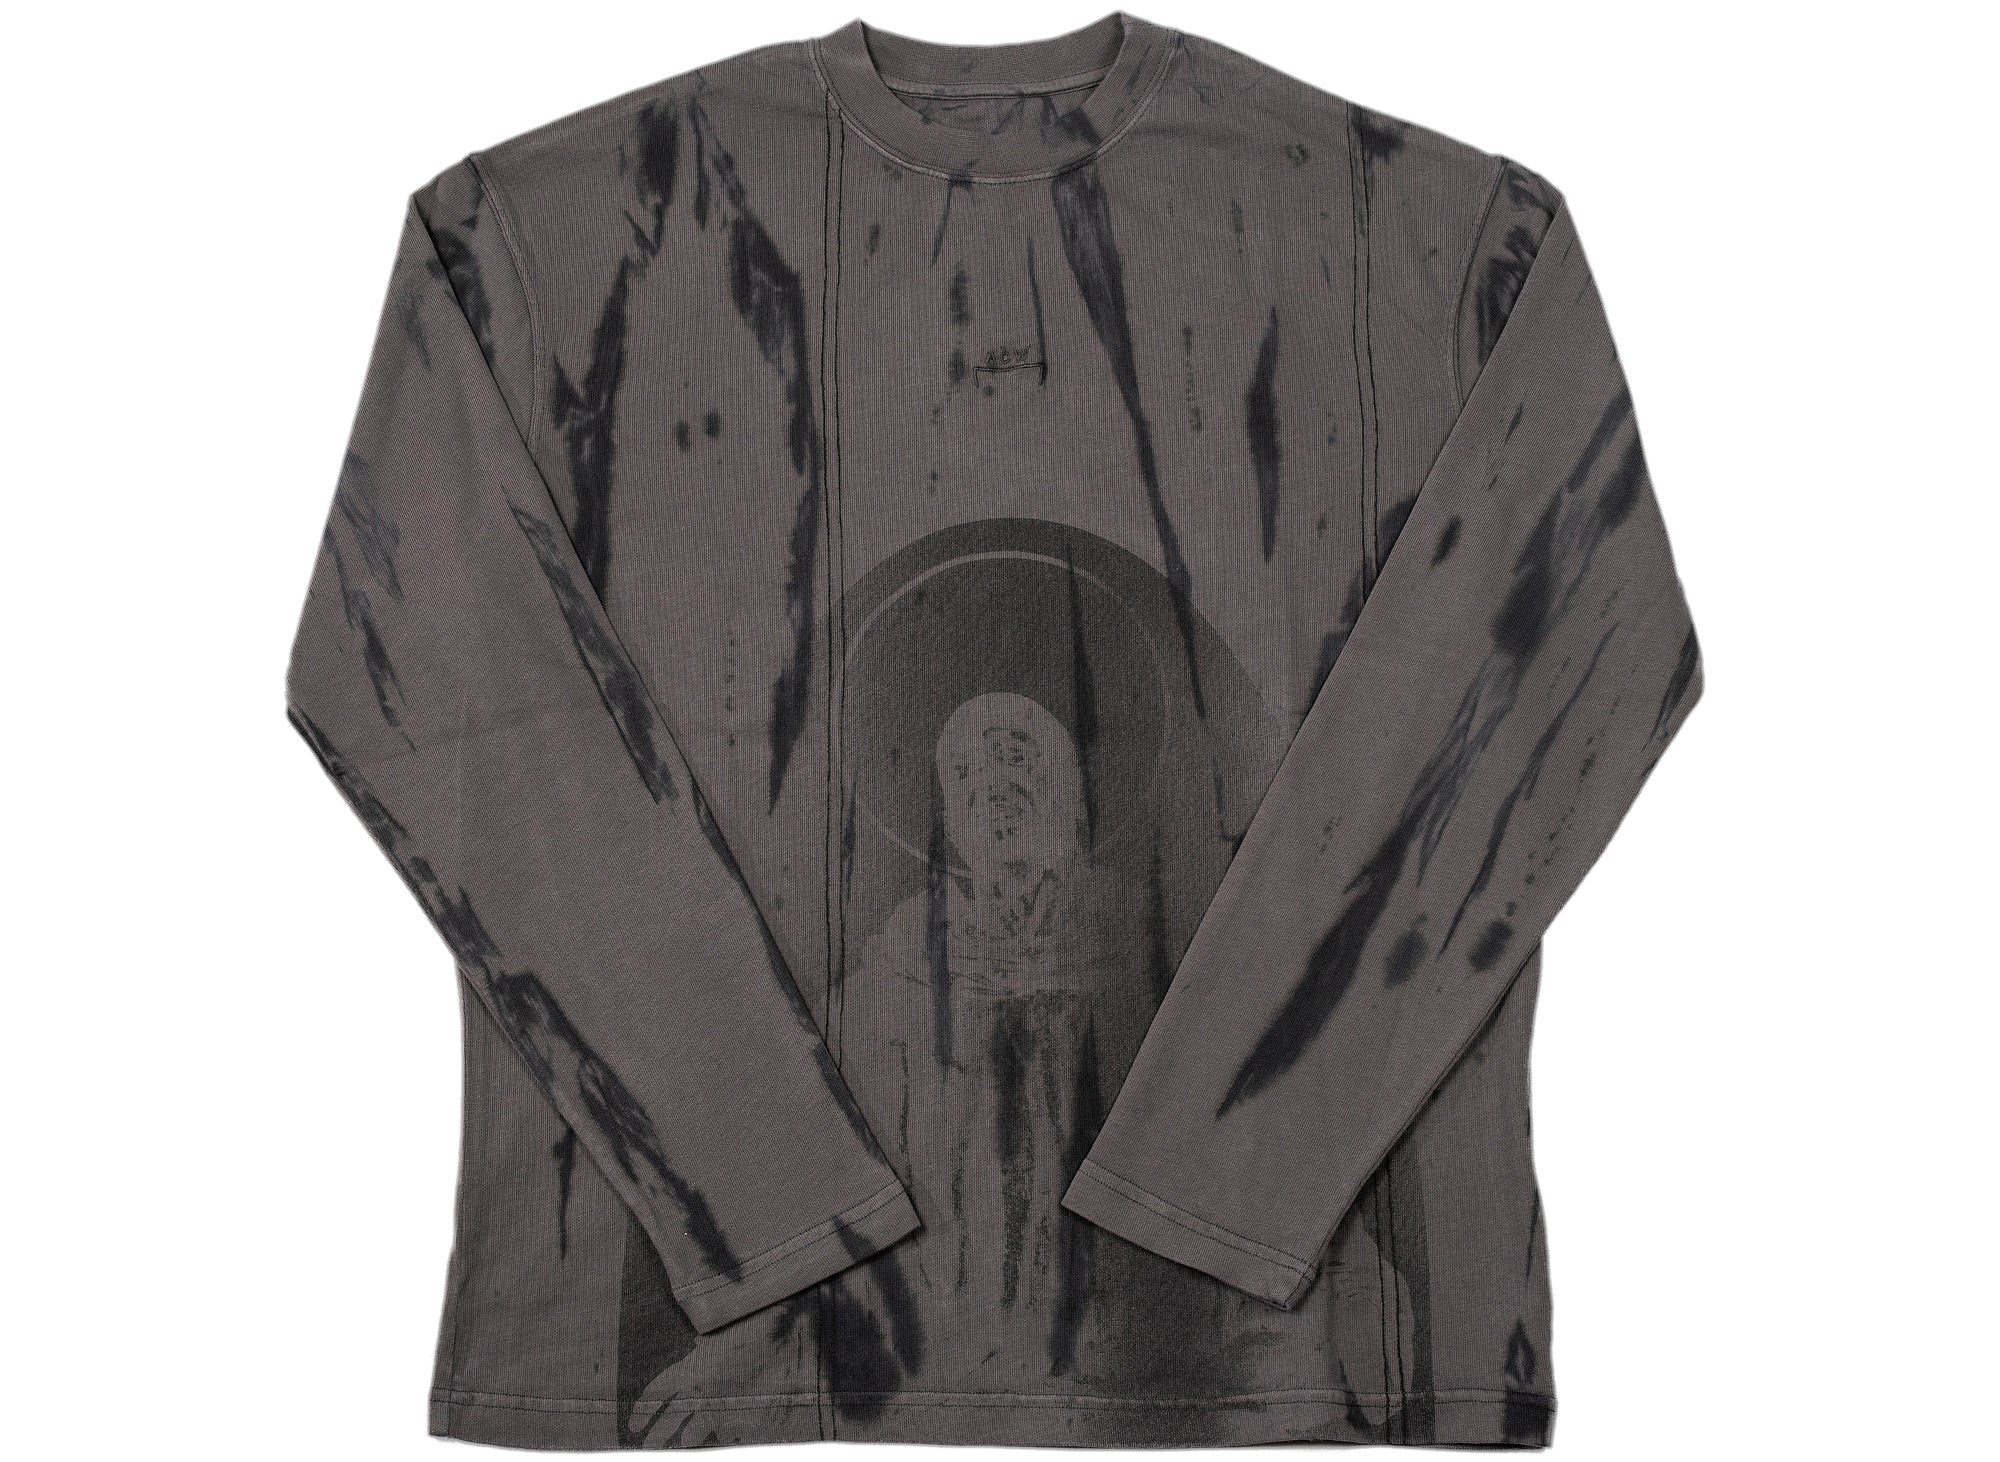 A-COLD-WALL* Knitted Overdyed Print Long Sleeve Tee in Black xld